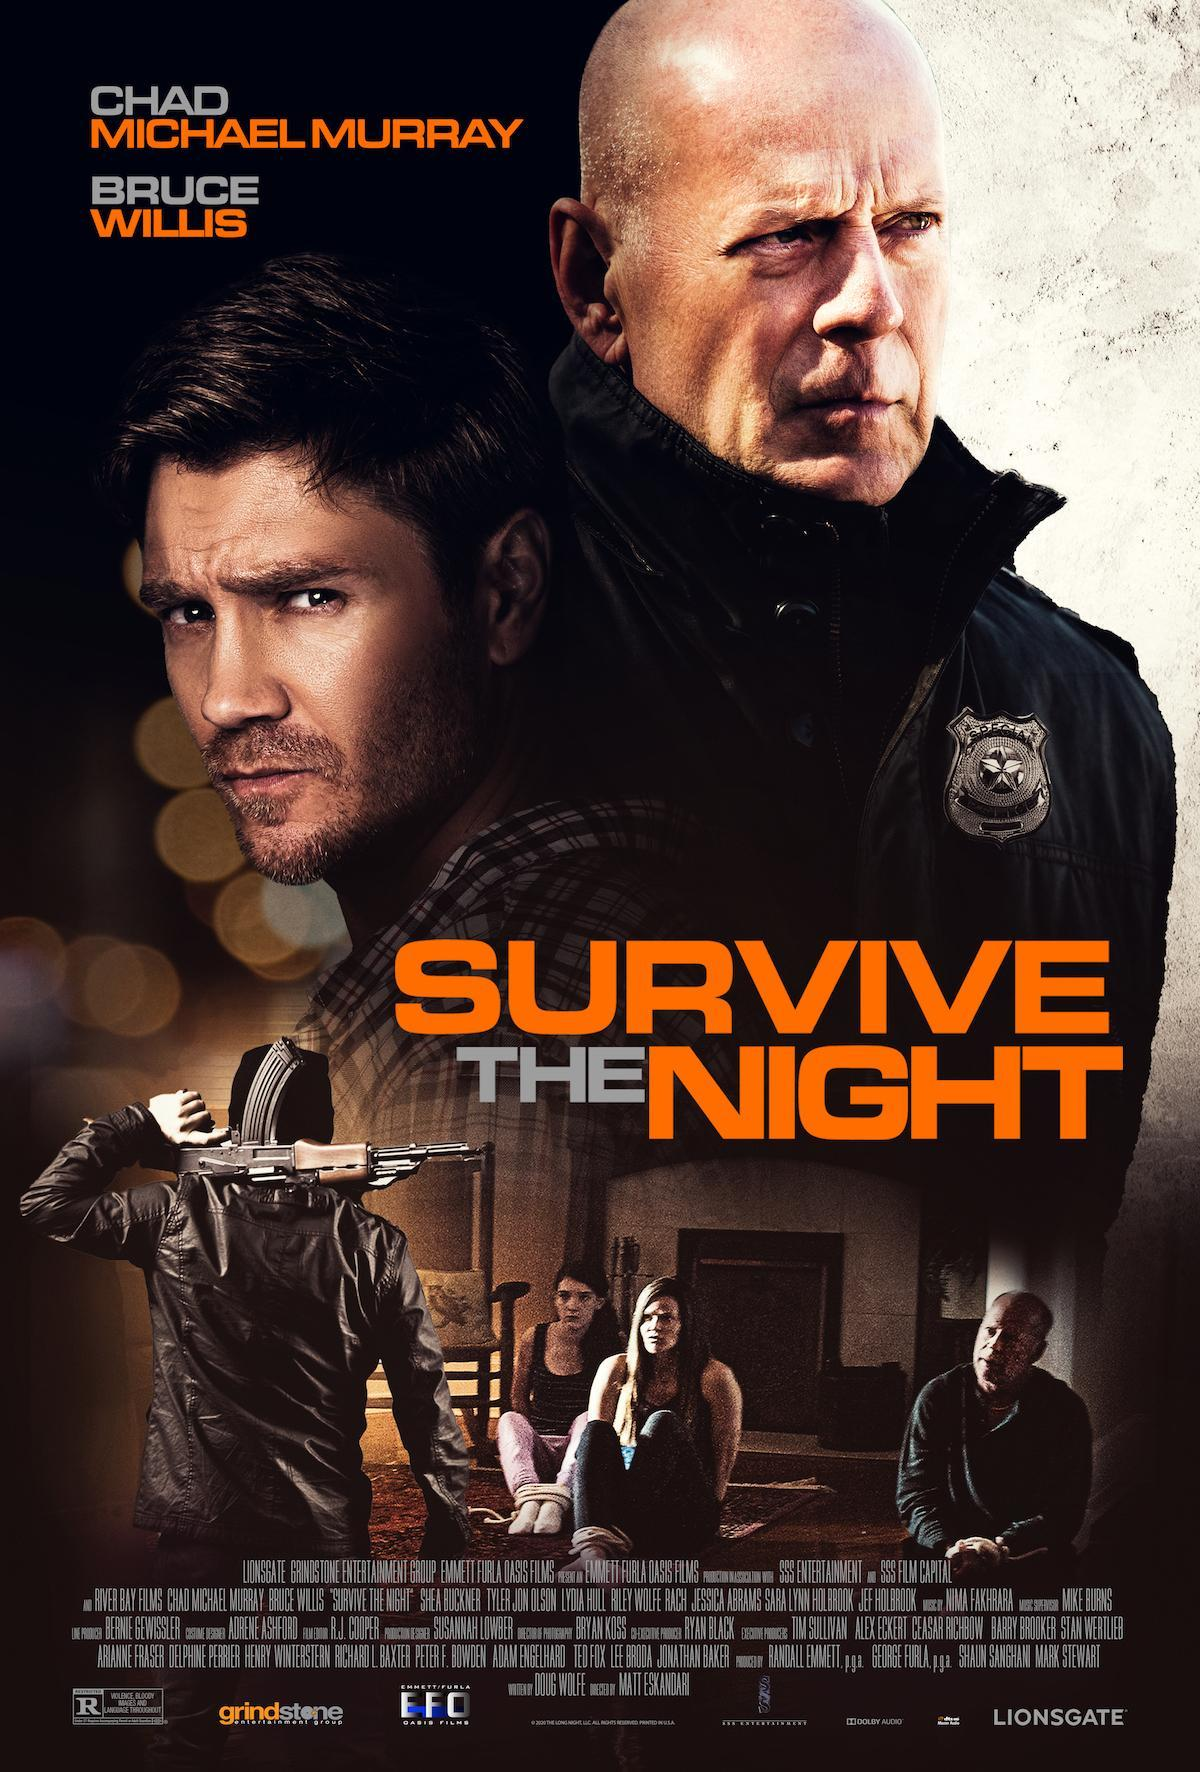 survive-the-night-bruce-willis-chad-michael-murray-poster